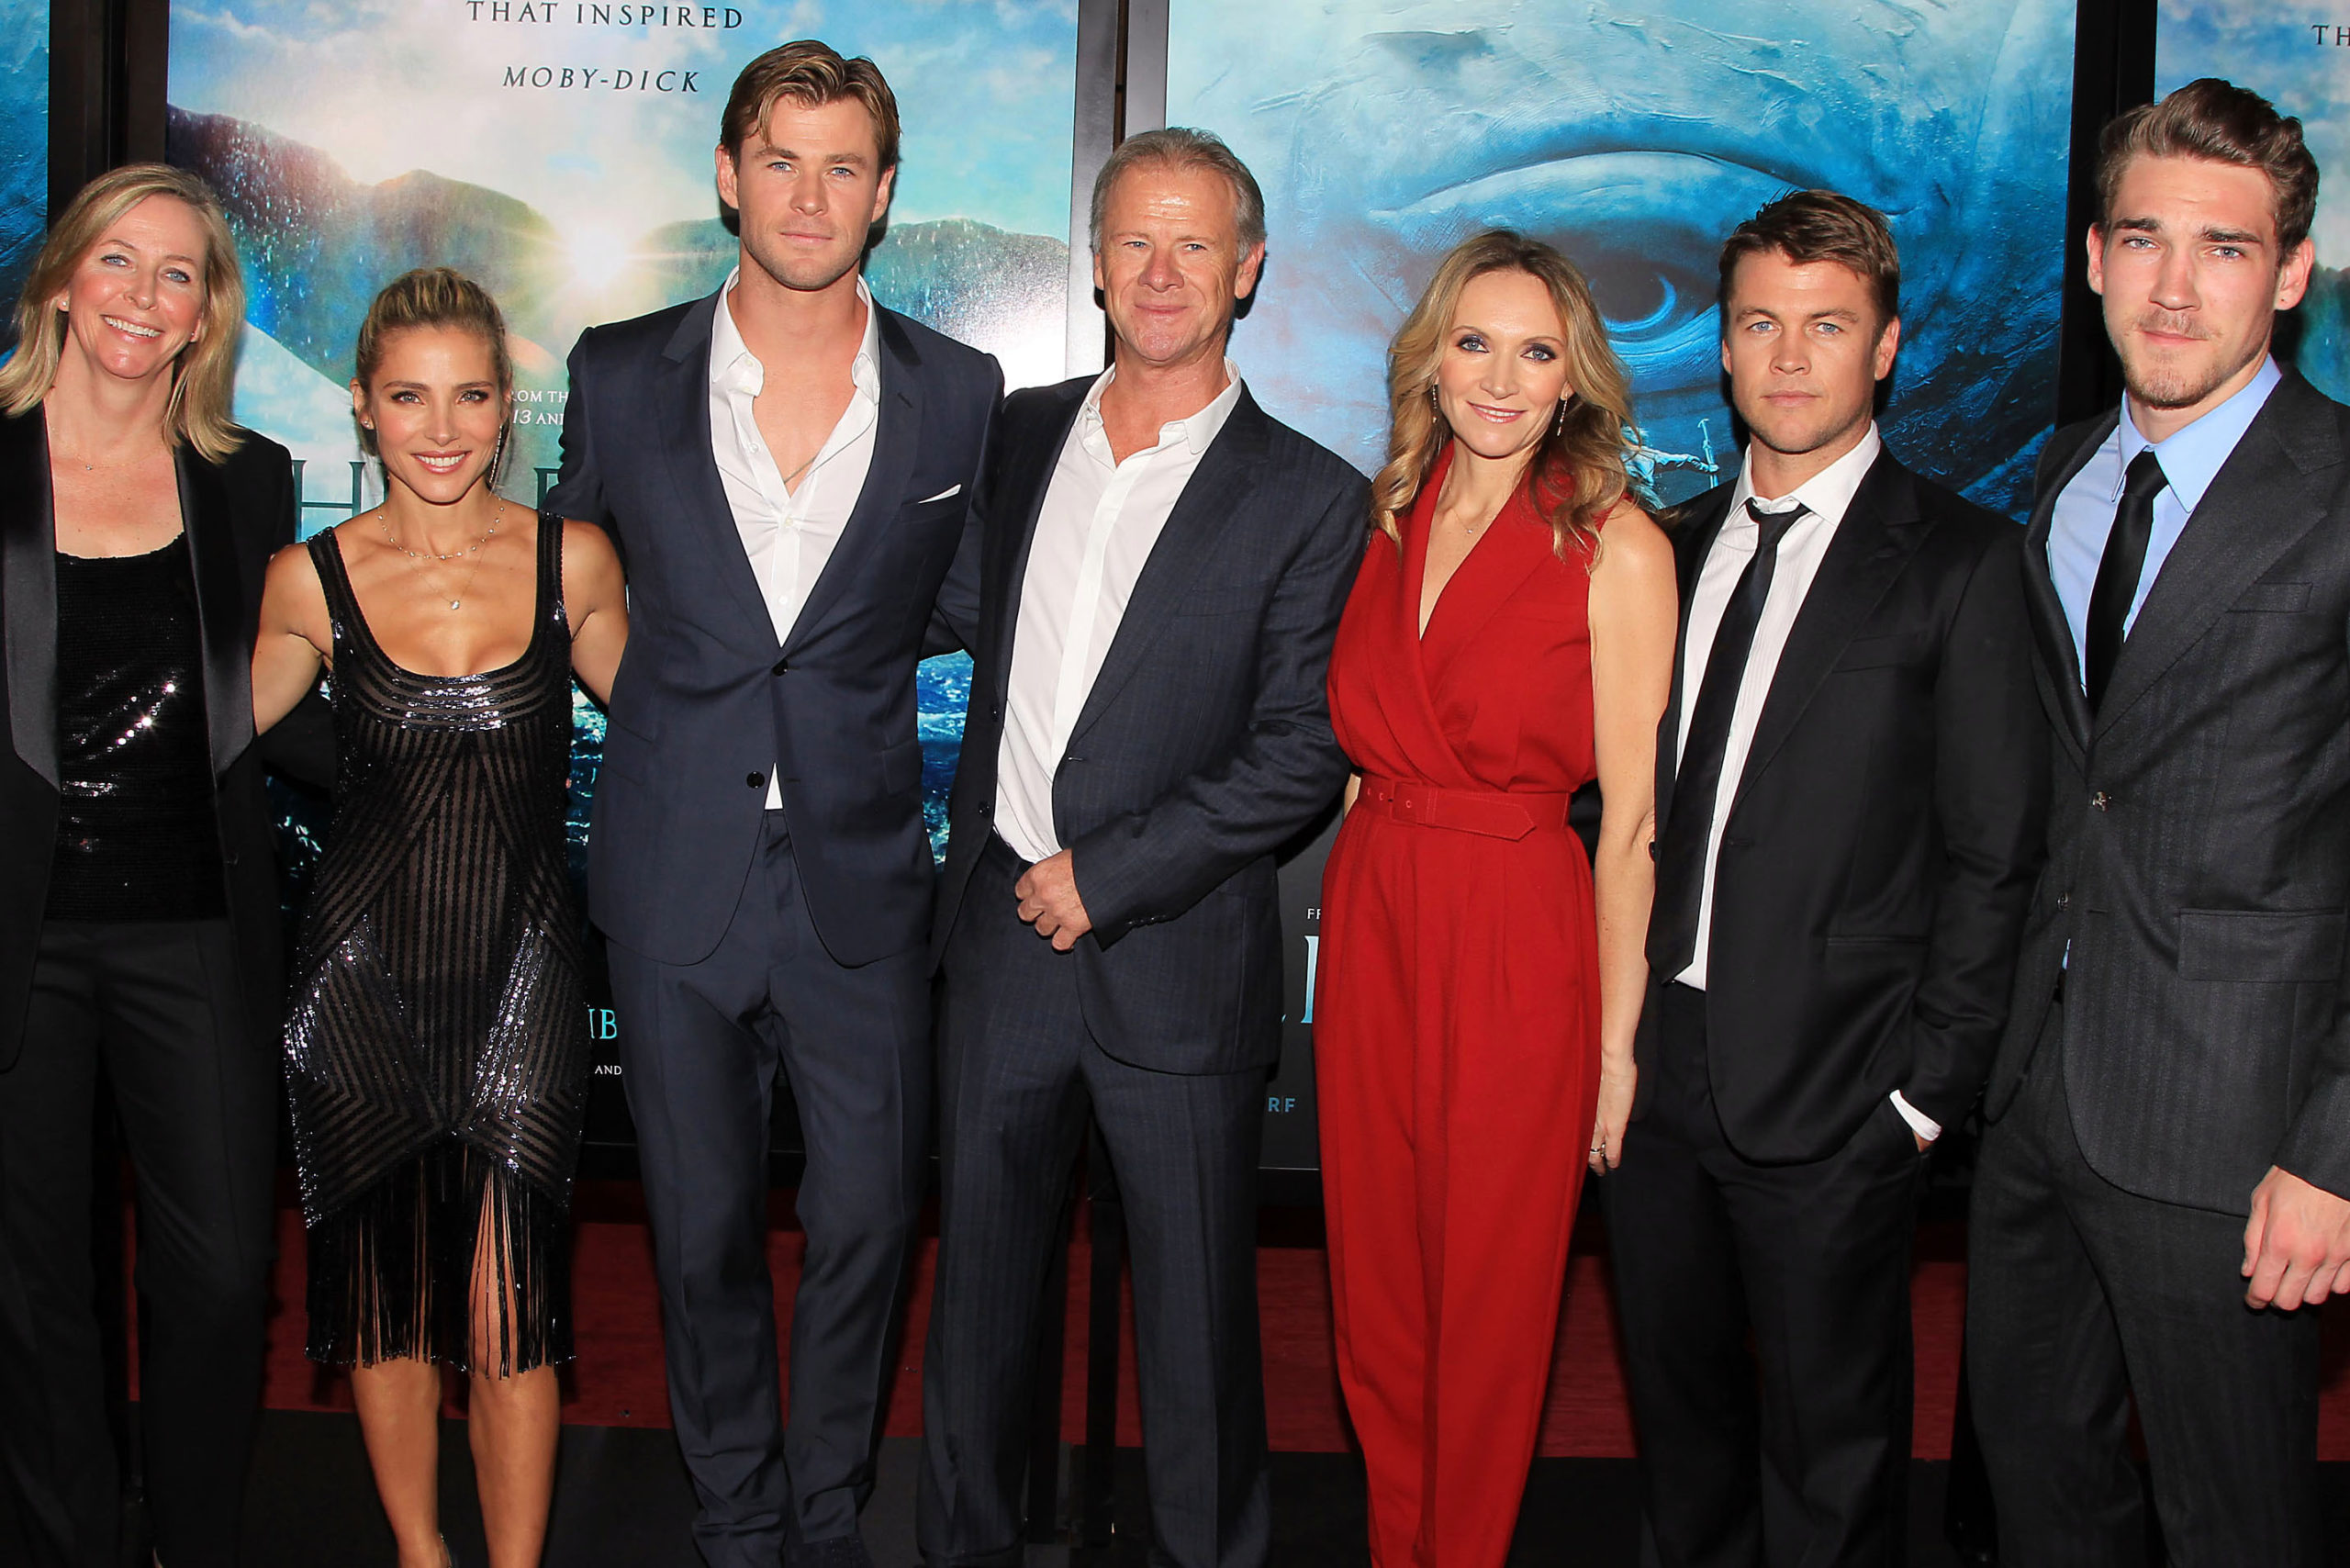 Meet Craig Hemsworth – the Father of Actors Chris, Liam, and Luke